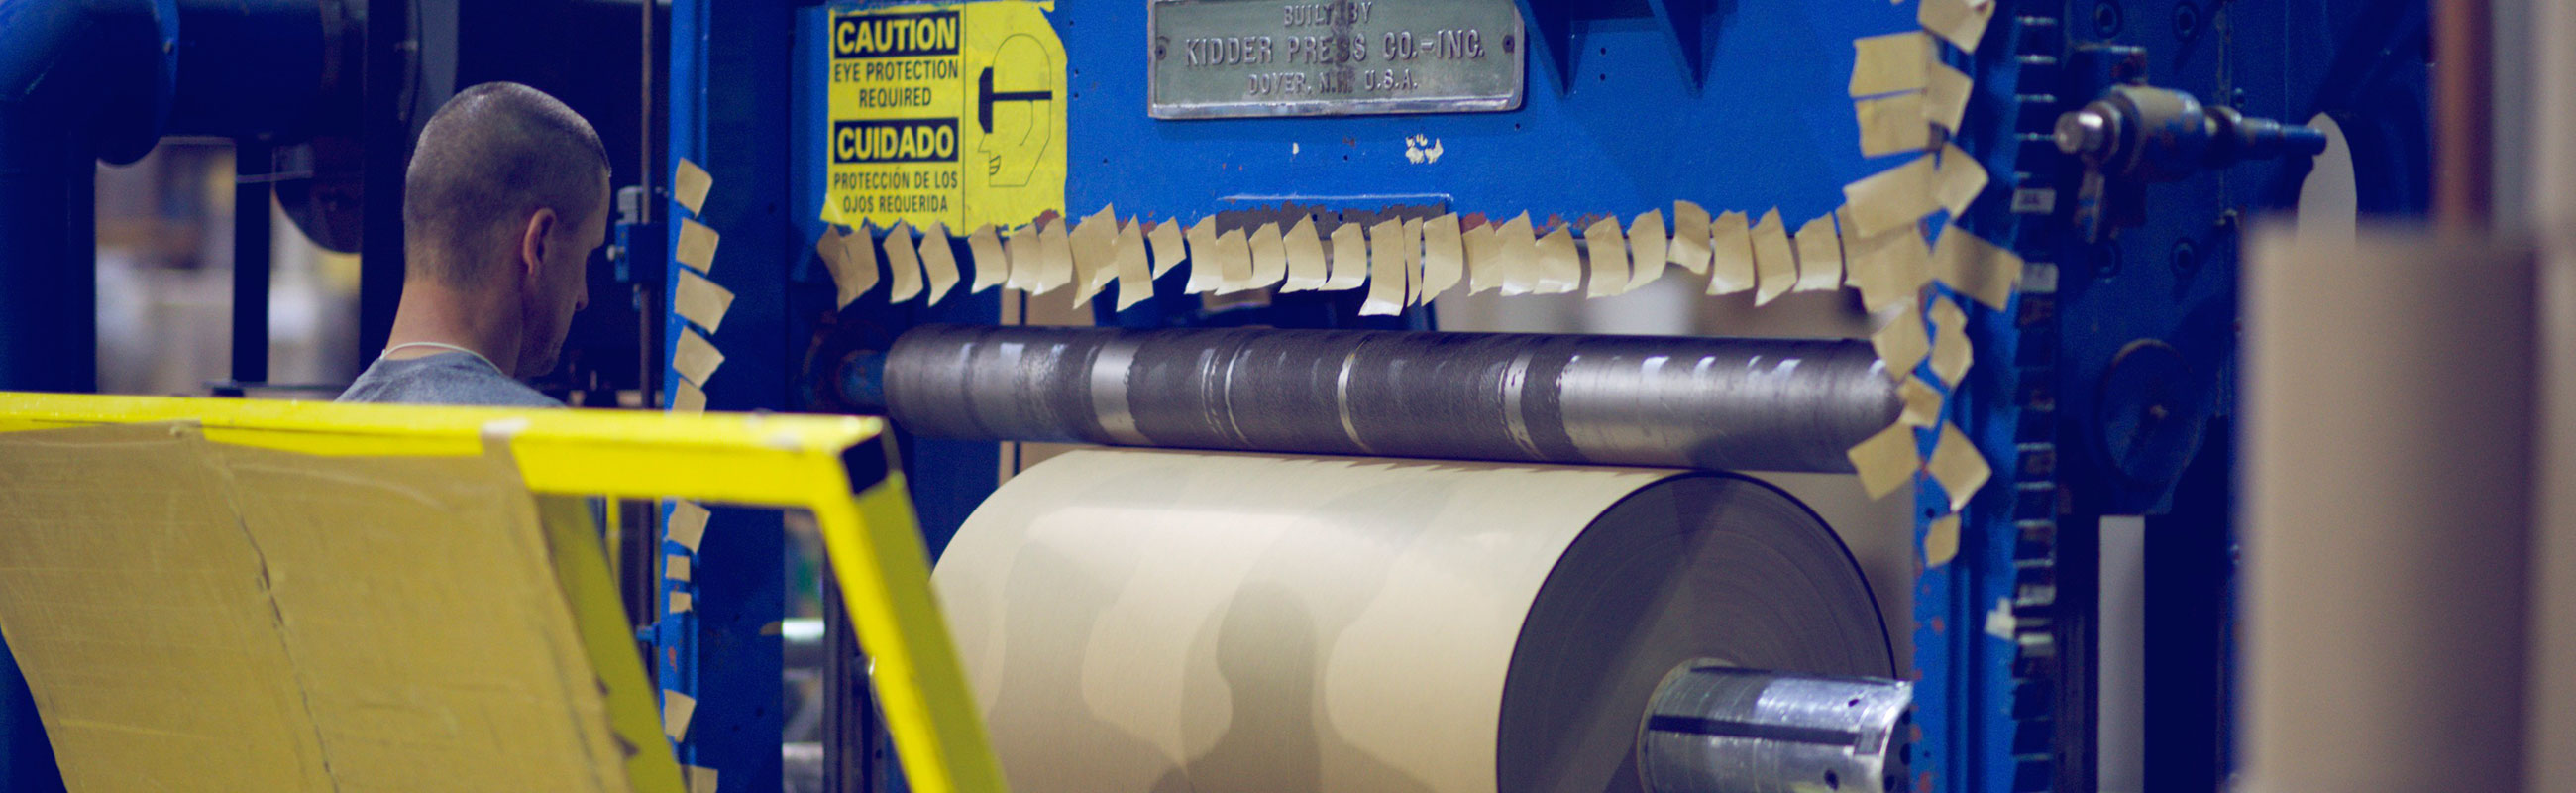 Dunnage paper rolls rewinding